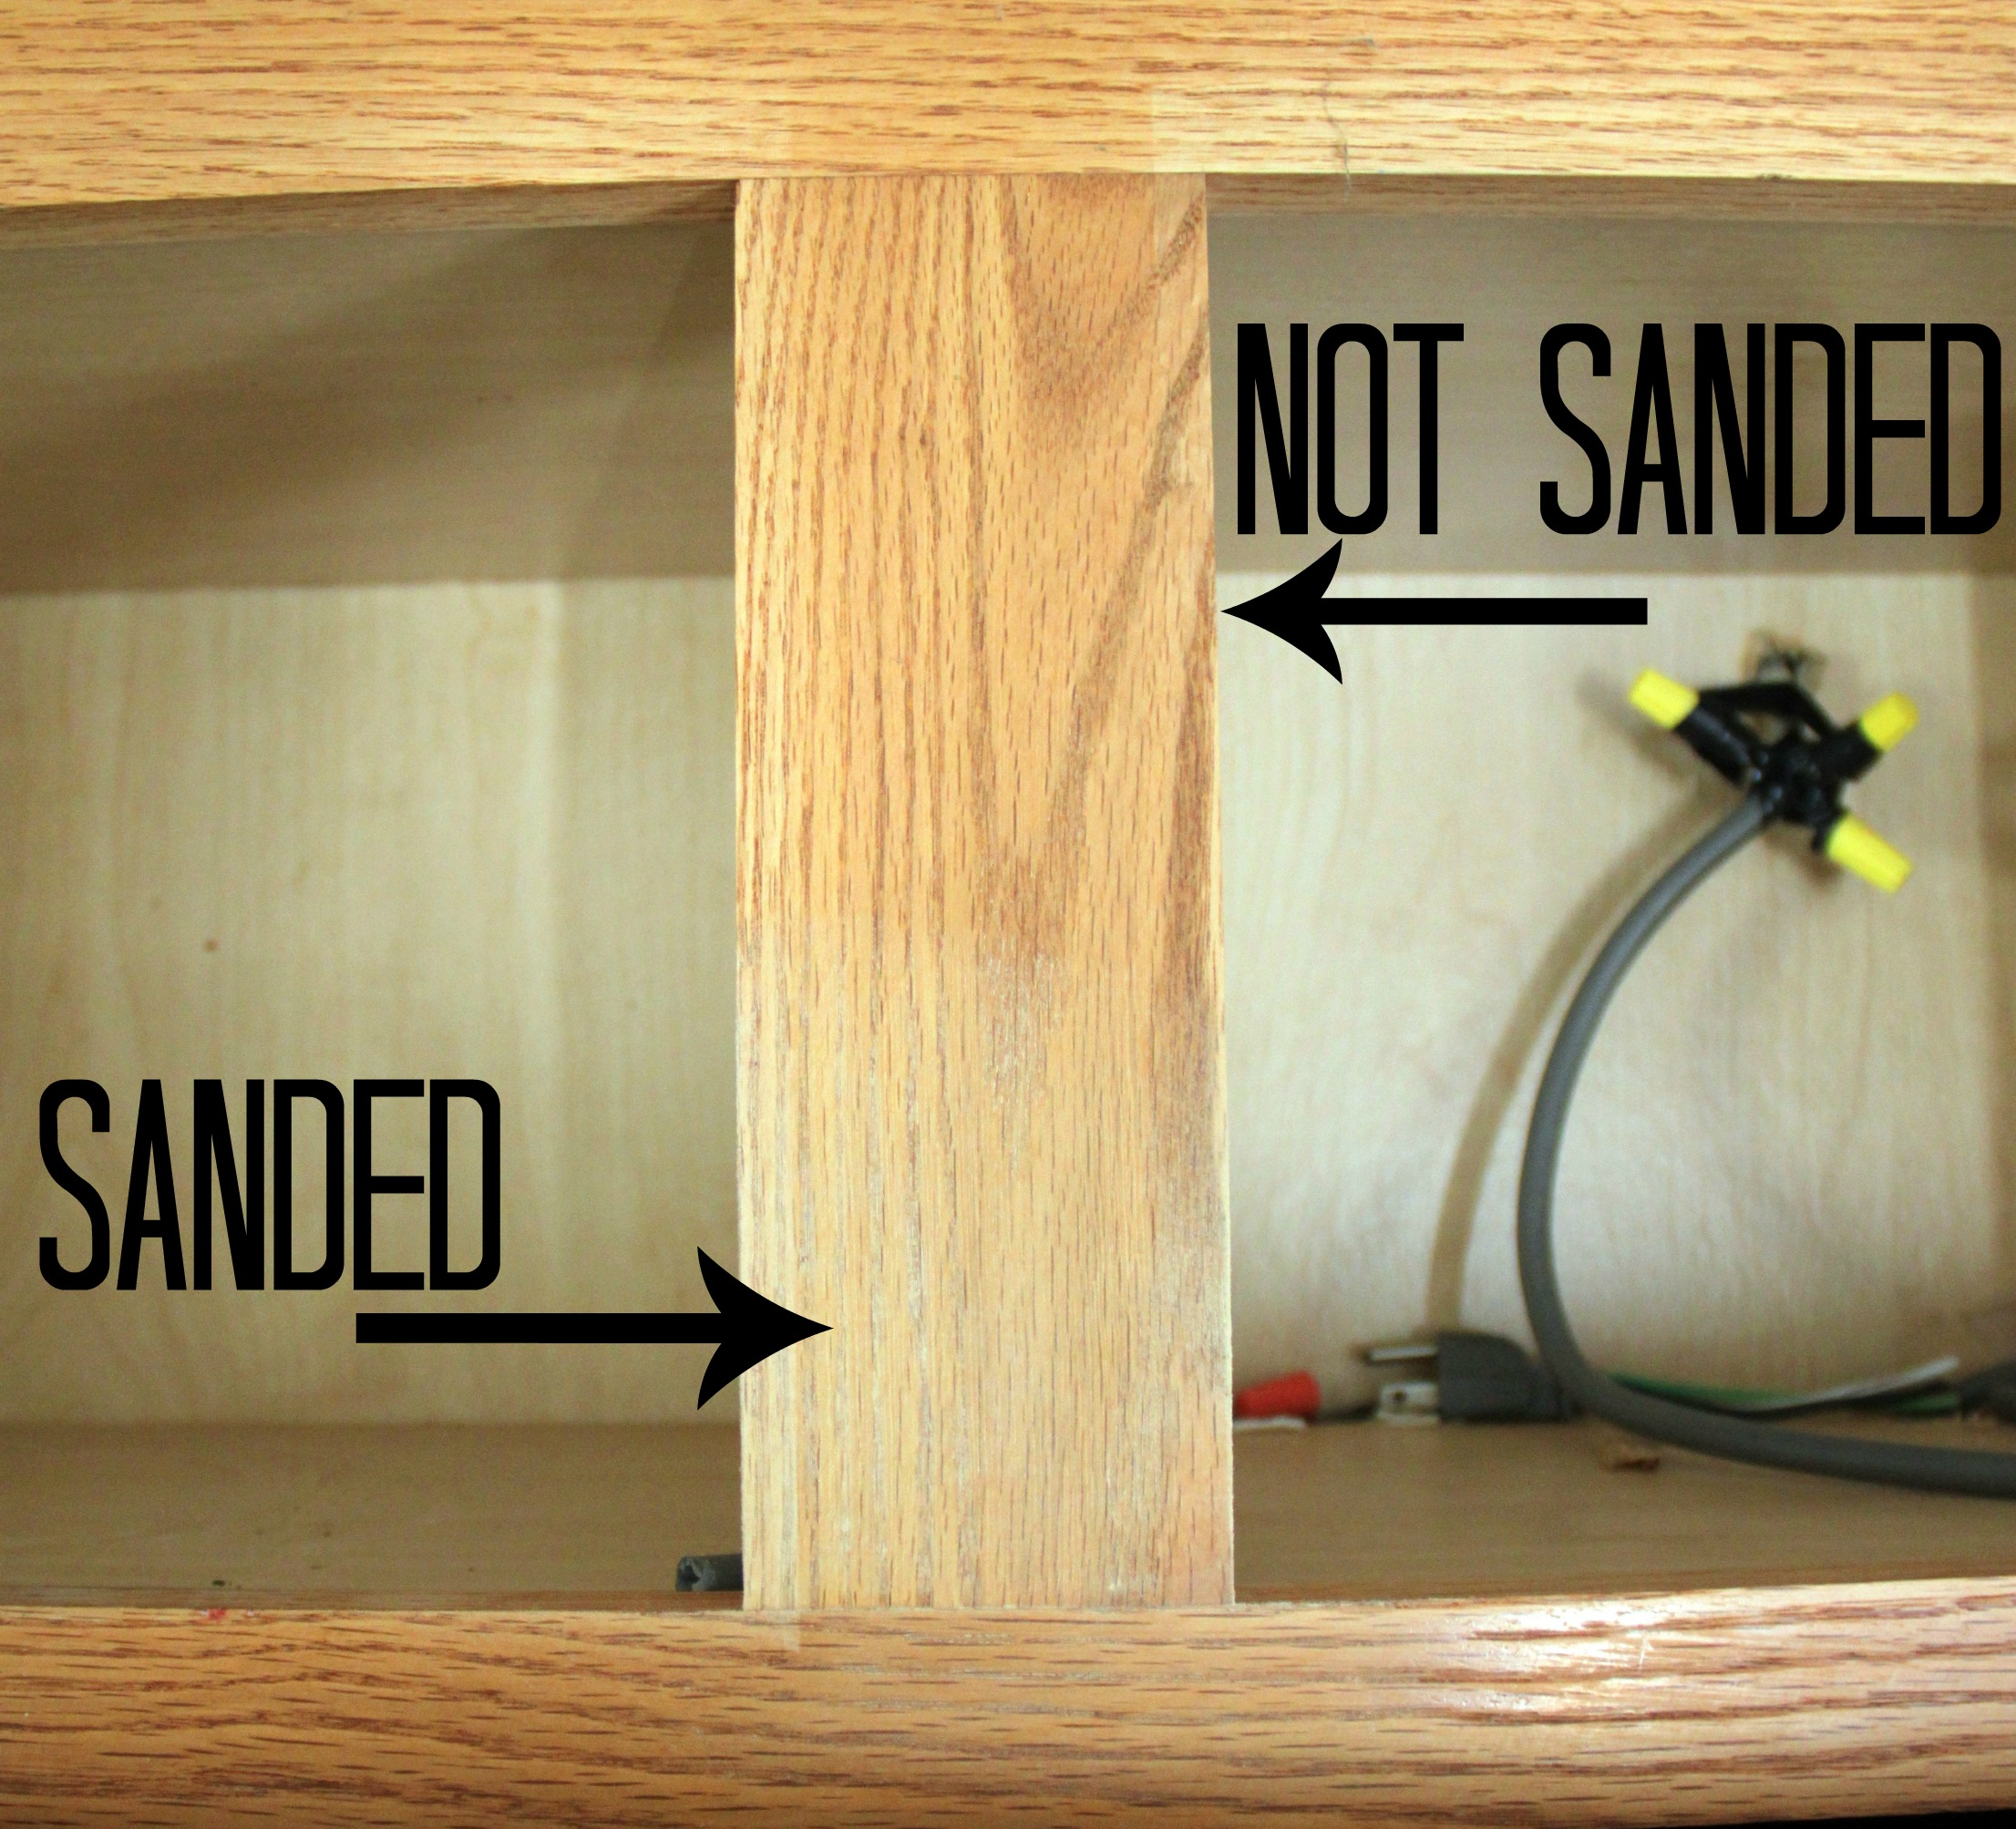 How Much Sanding Do You Do To Cabinets Before Painting Them